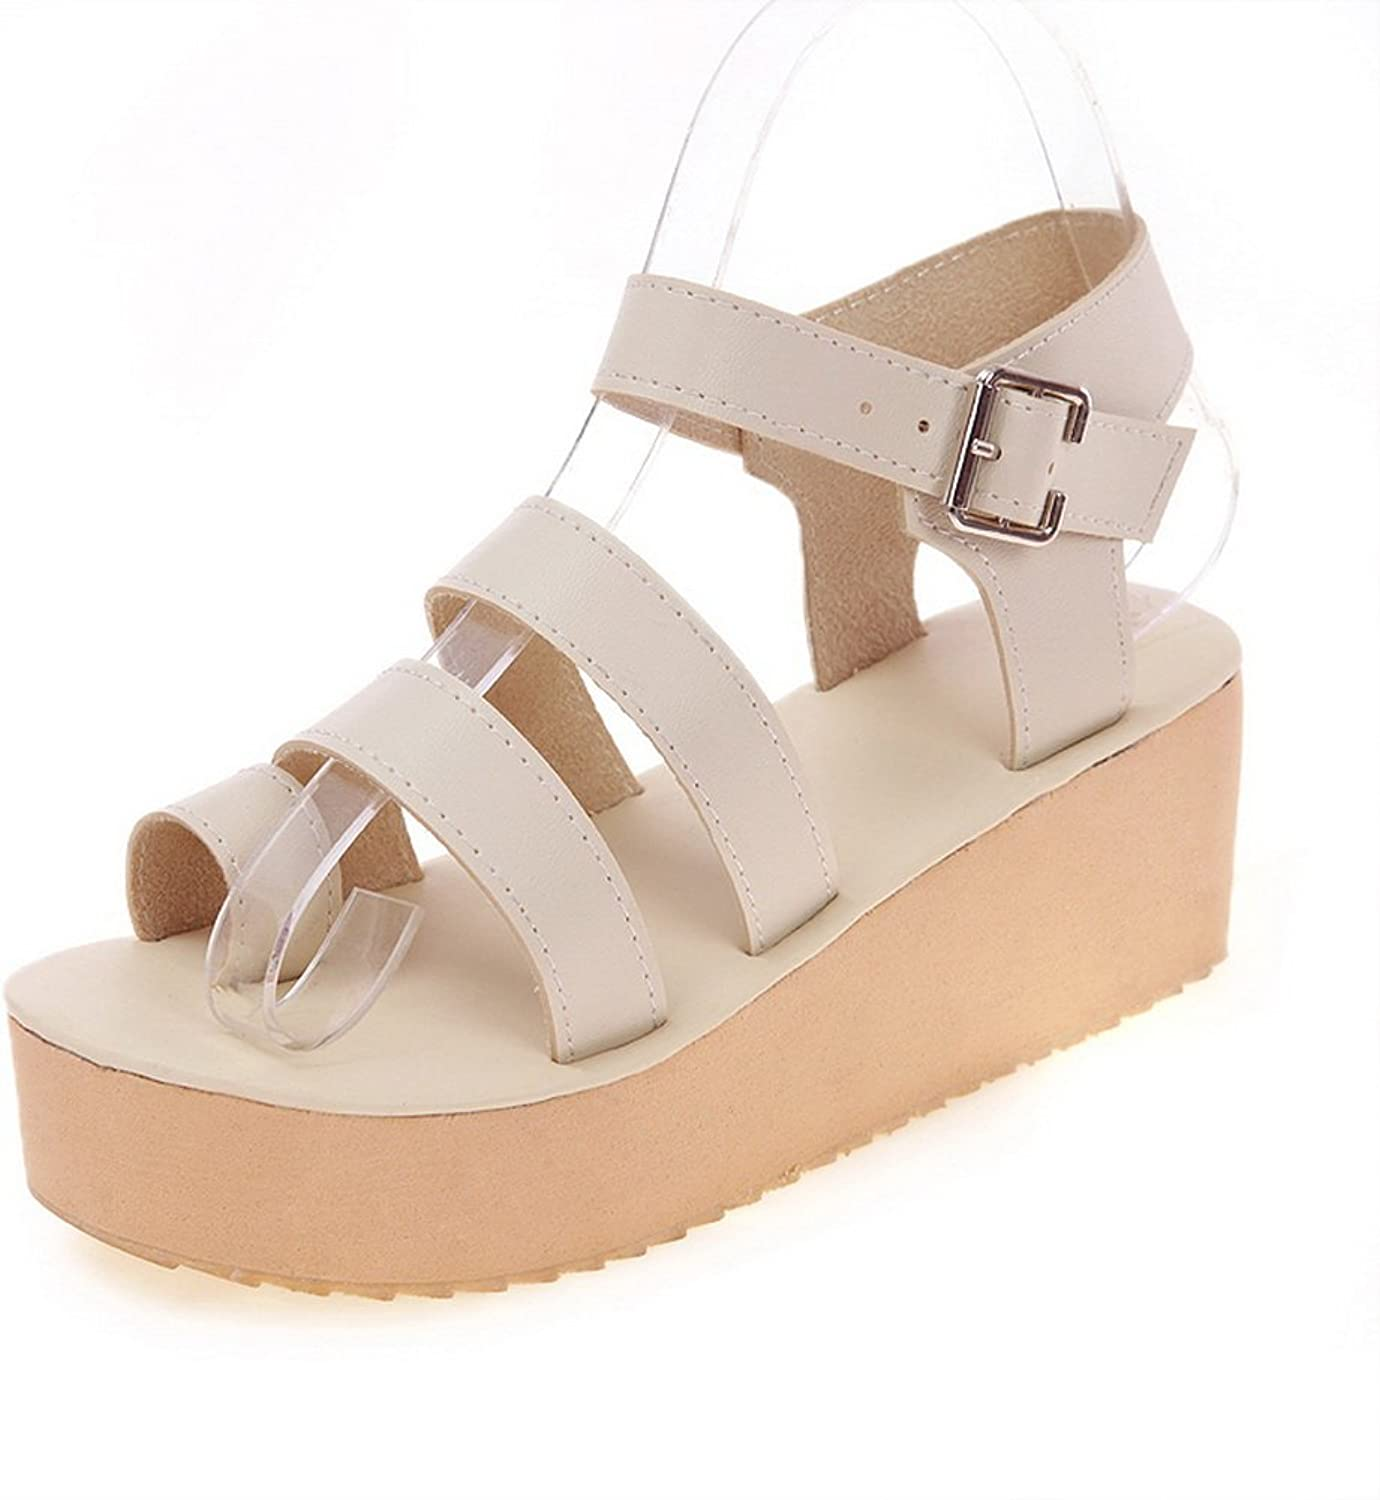 AdeeSu Womens Platforms-Sandals Platform Buckle Ankle-Wrap Mid-Heel Cold Lining Smooth Leather Special-Occasion Platform Urethane Platforms Sandals SLC03543